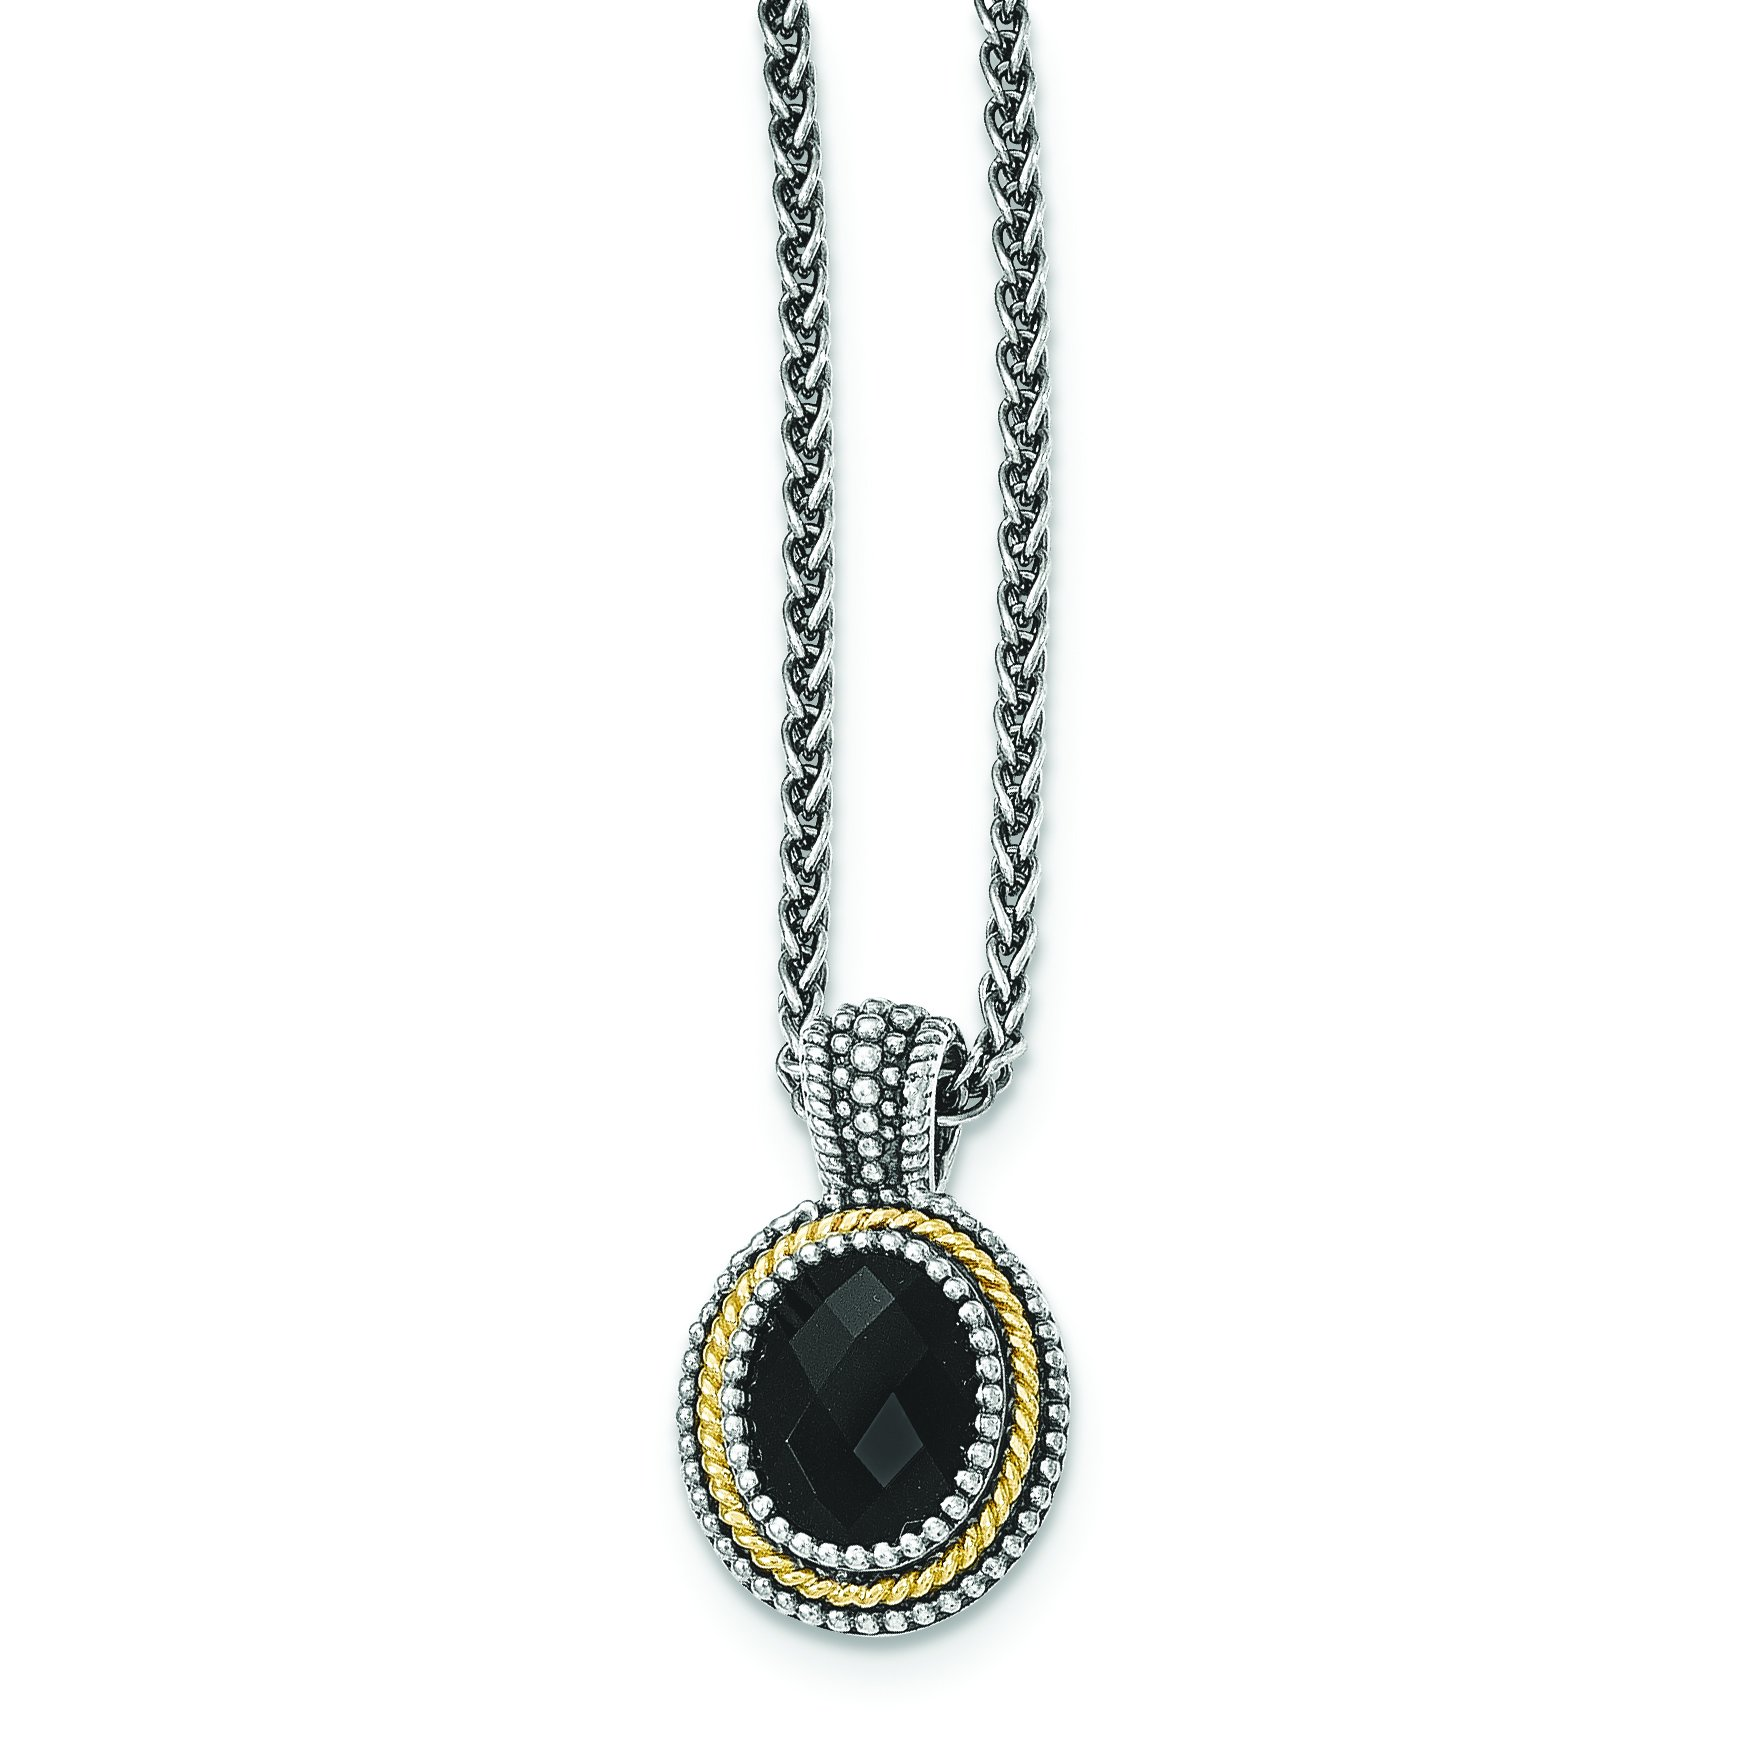 ICE CARATS 925 Sterling Silver 14k Black Onyx Chain Necklace Gemstone Fine Jewelry Gift Set For Women Heart by ICE CARATS